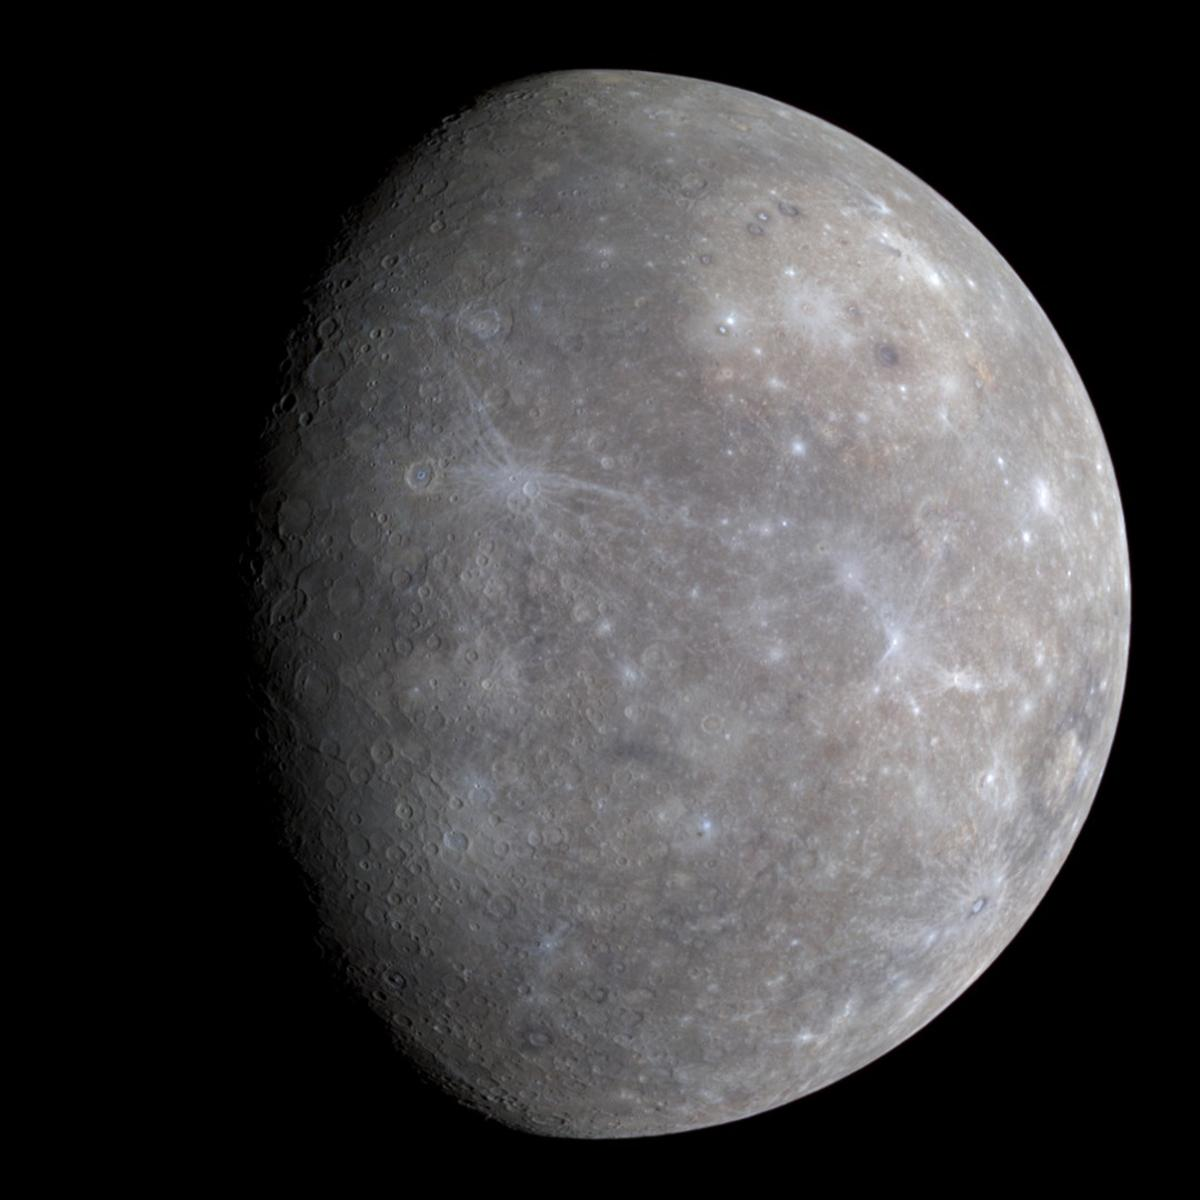 Even the hot rock that is Mercury is cooling over time and, as a result, its surface is buckling